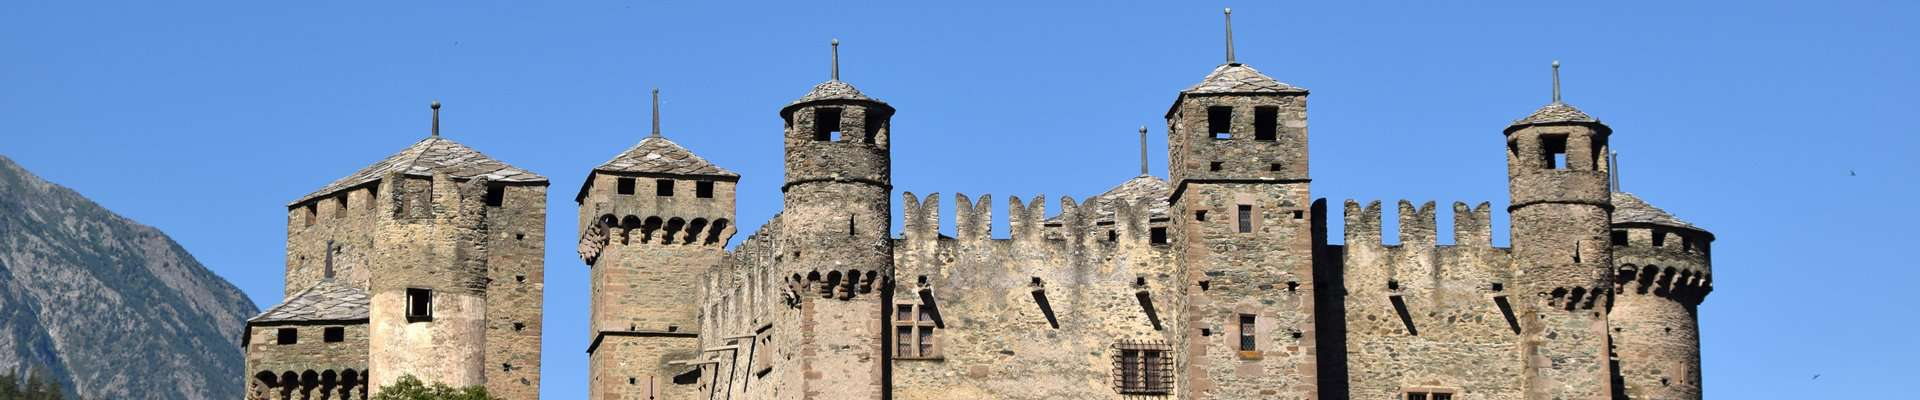 The many towers of Fénis Castle in the Aosta Valley of northern Italy.